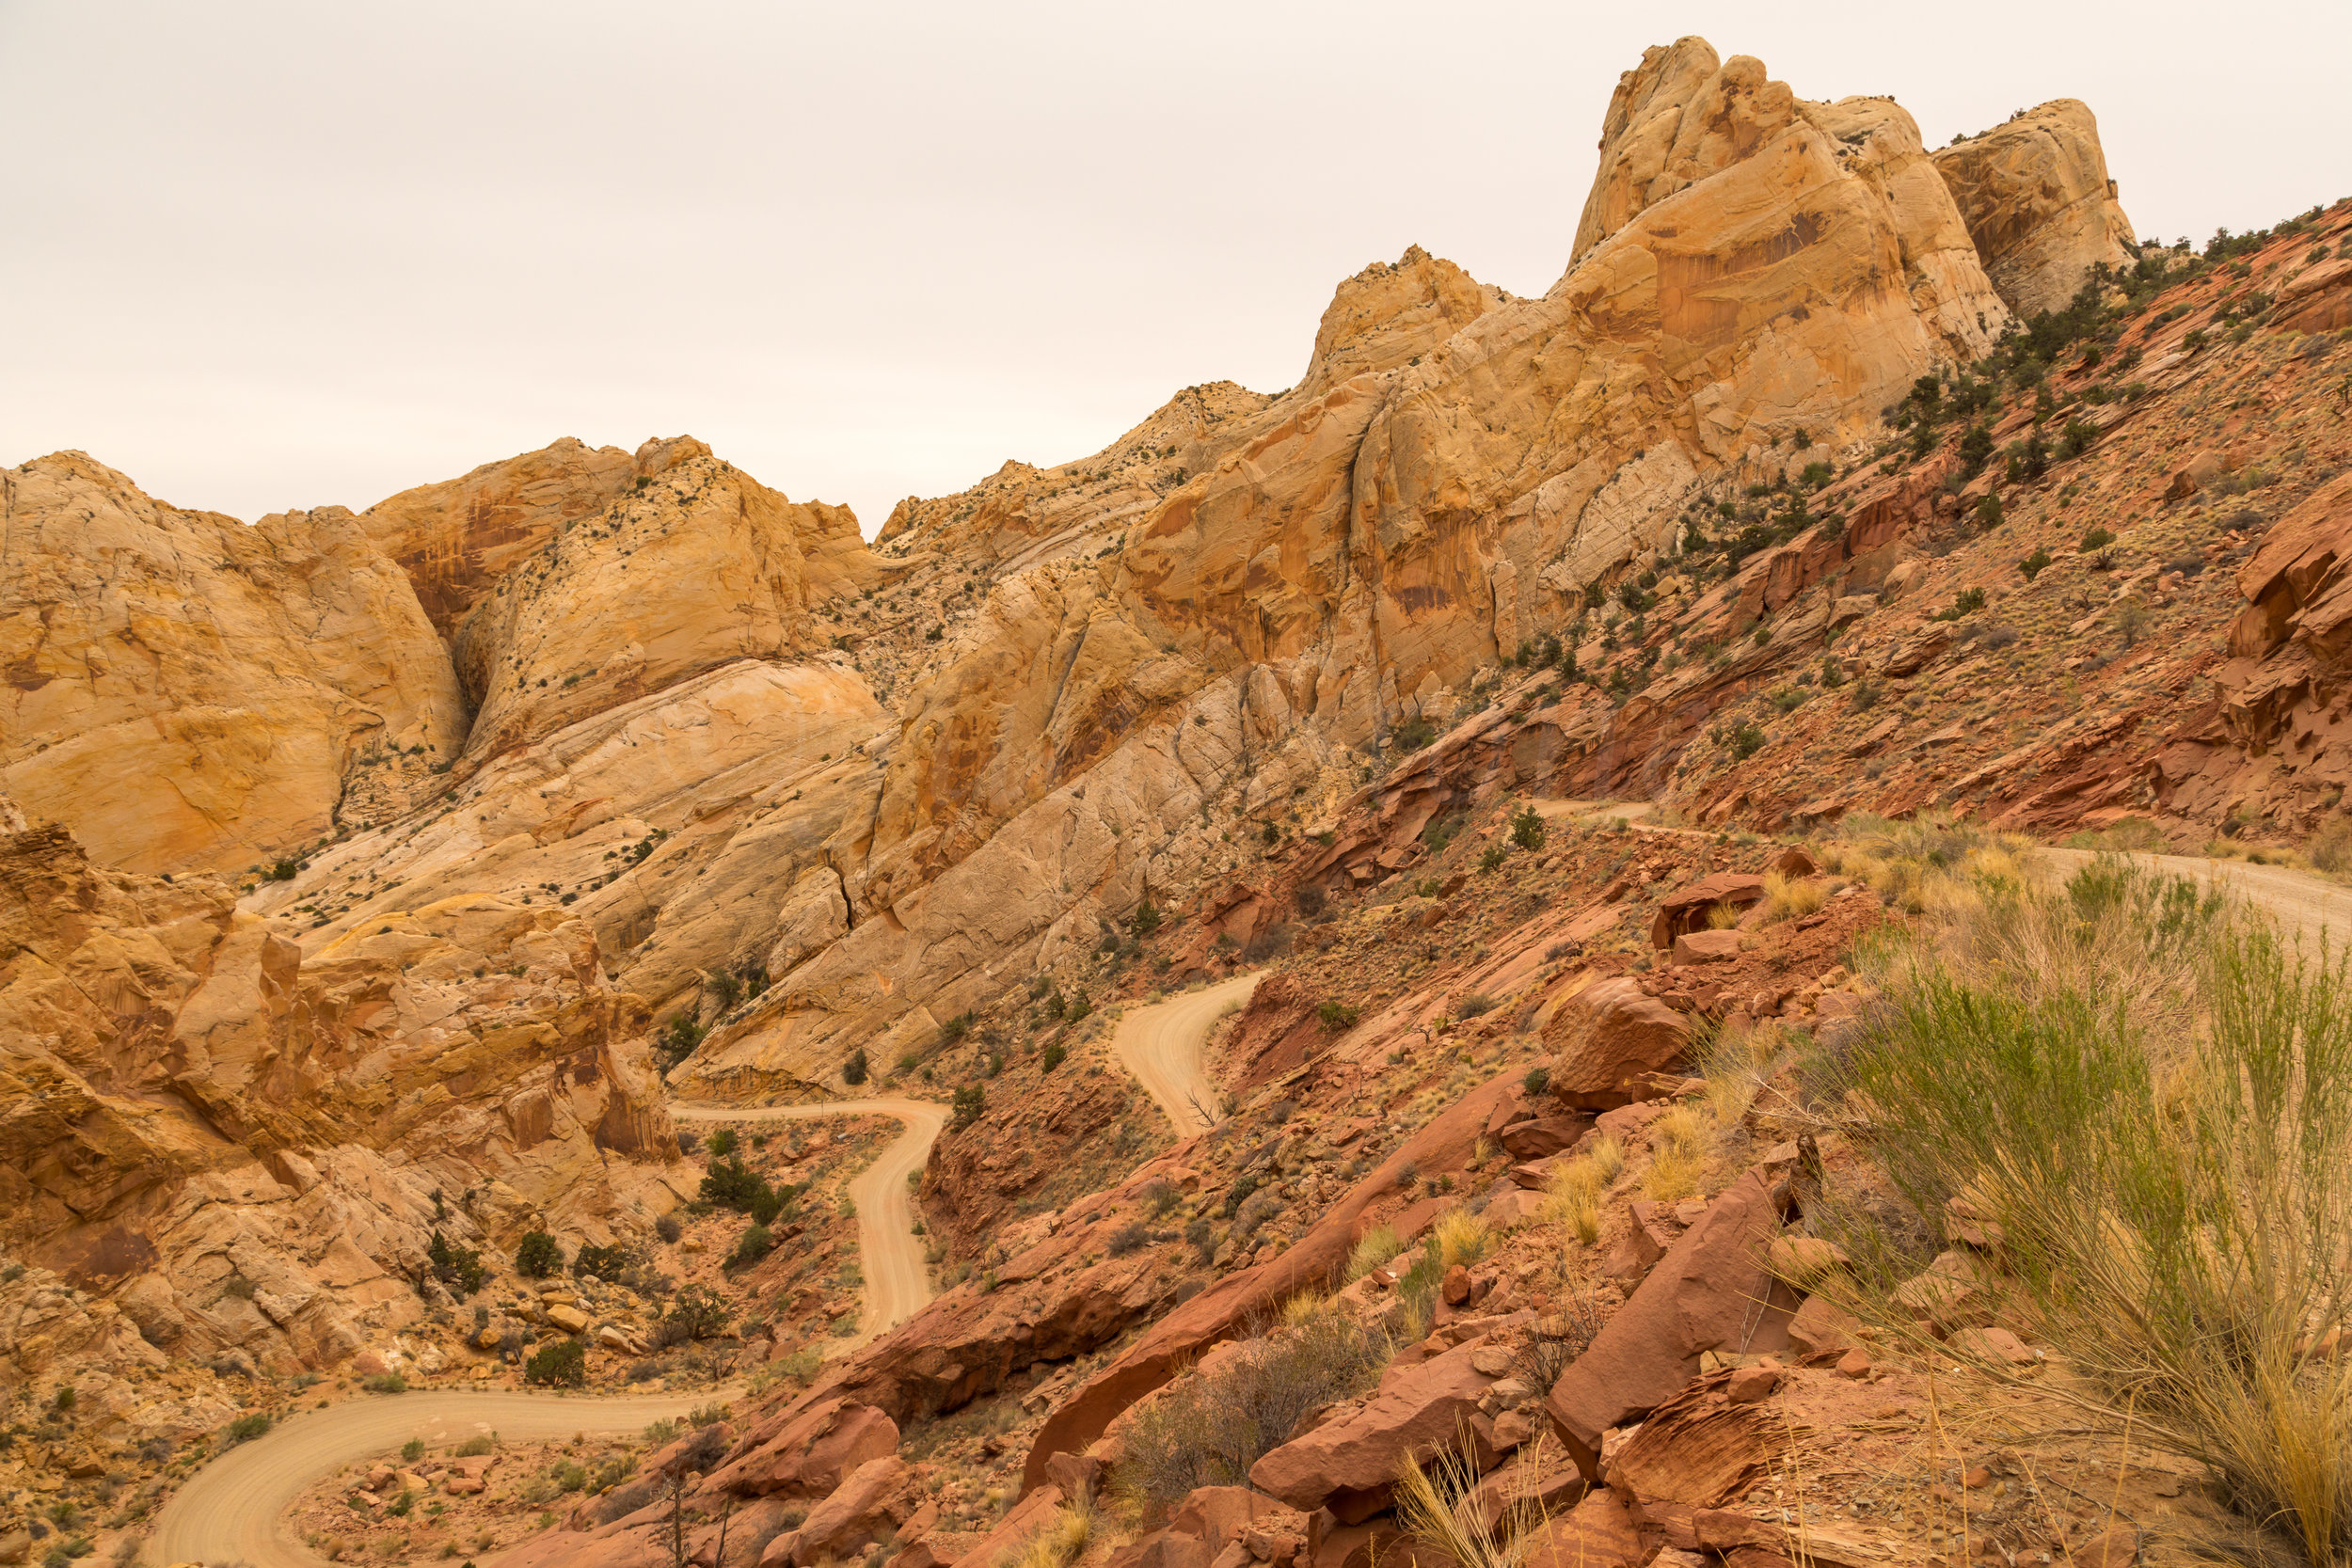 Capitol Reef National Park, Image # 4724